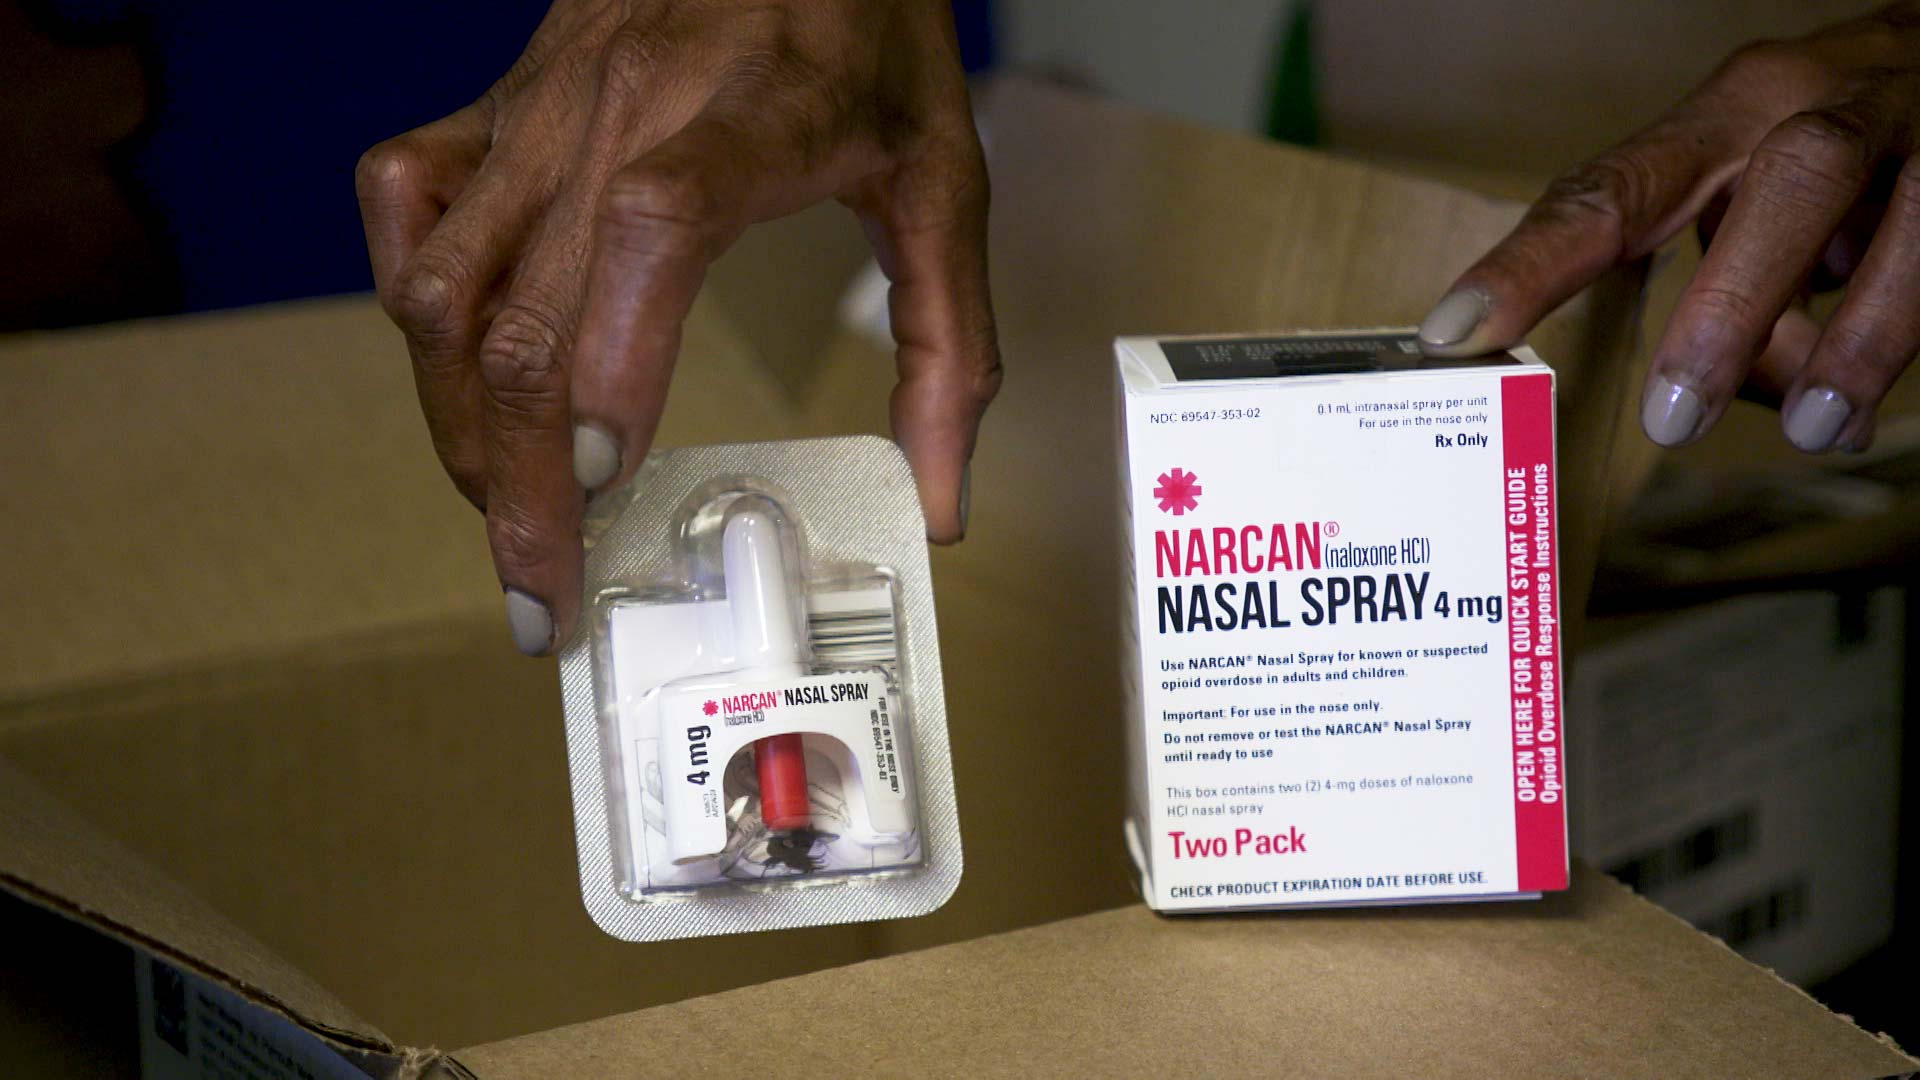 A package of Narcan Nasal Spray, a form of naloxone that can be used to reverse the effects of an opioid overdose.